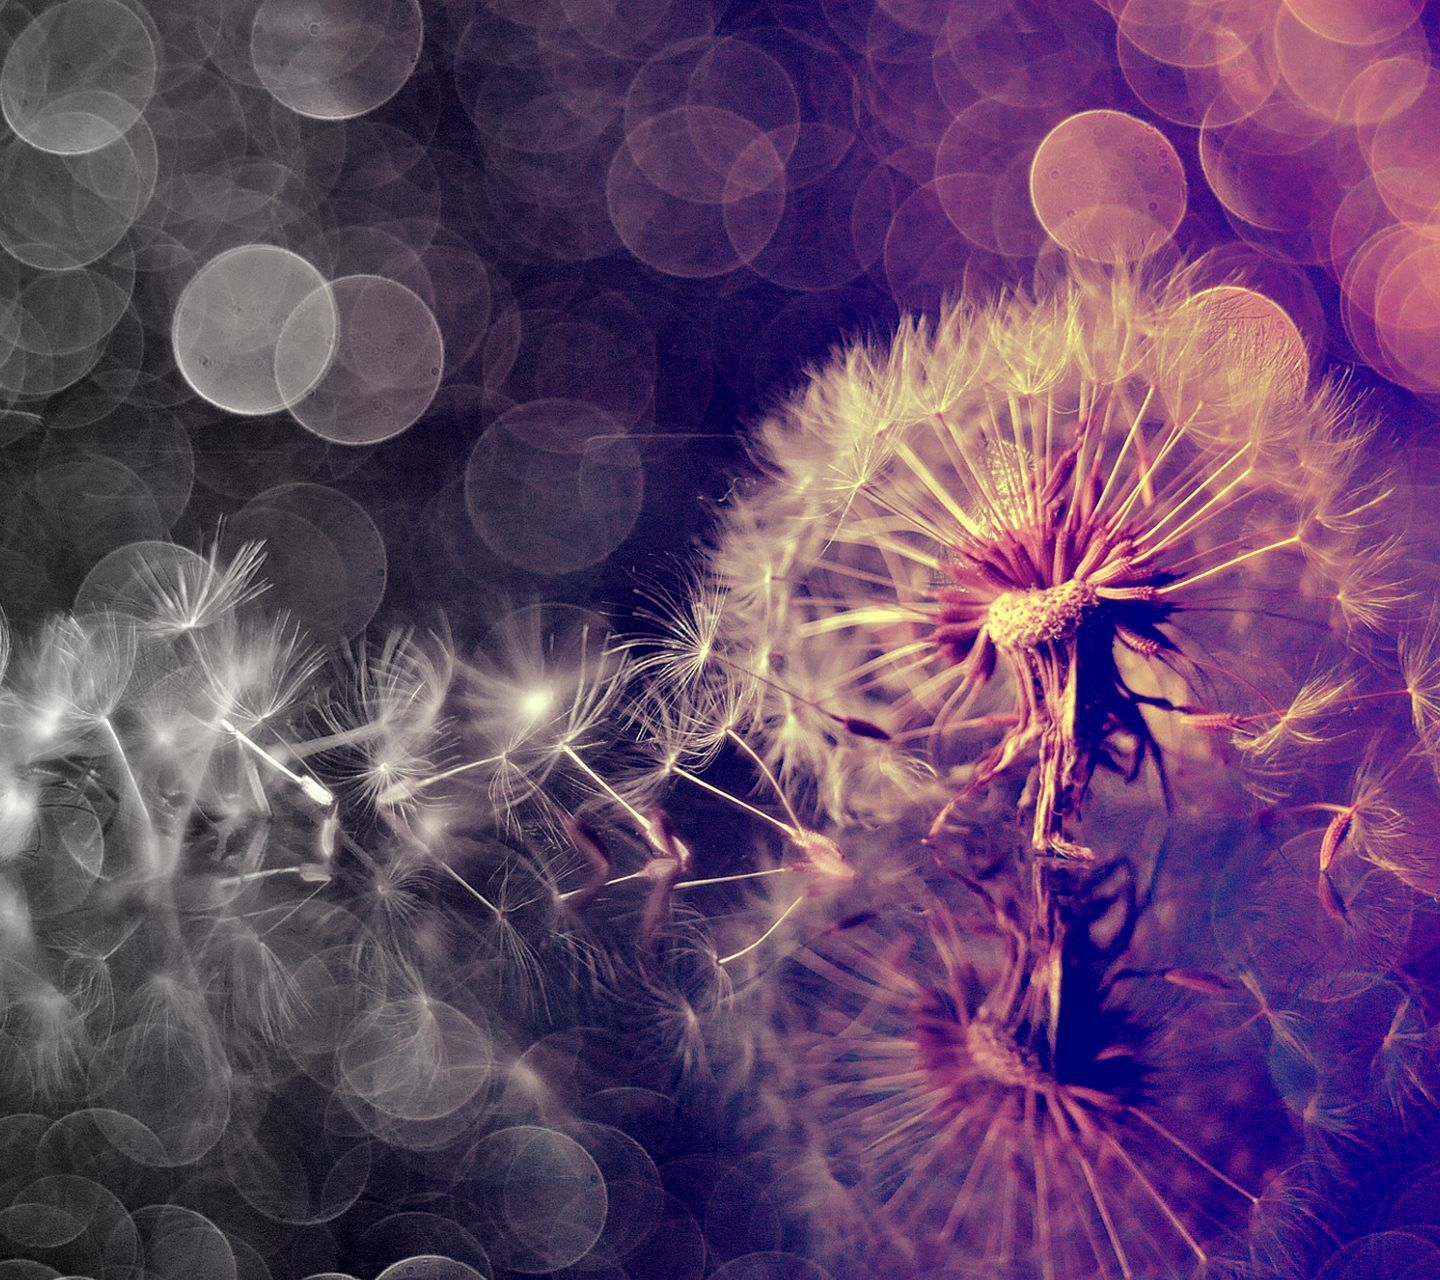 dandelion cell phone wallpaper quotes - photo #39